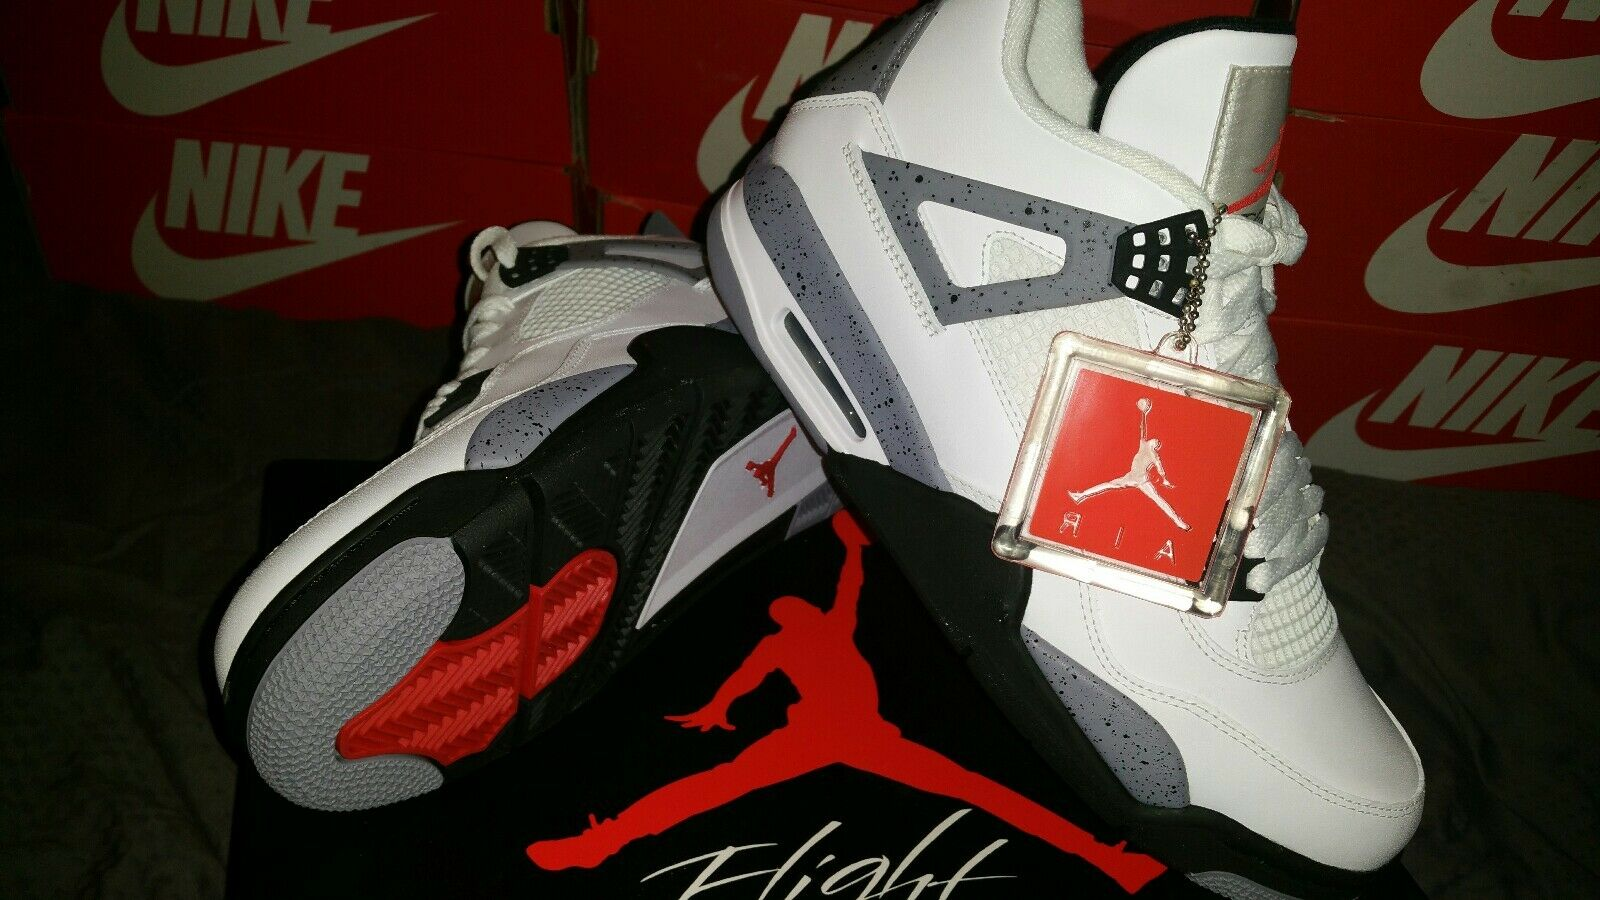 Jordan 4 Retrò Air cemento